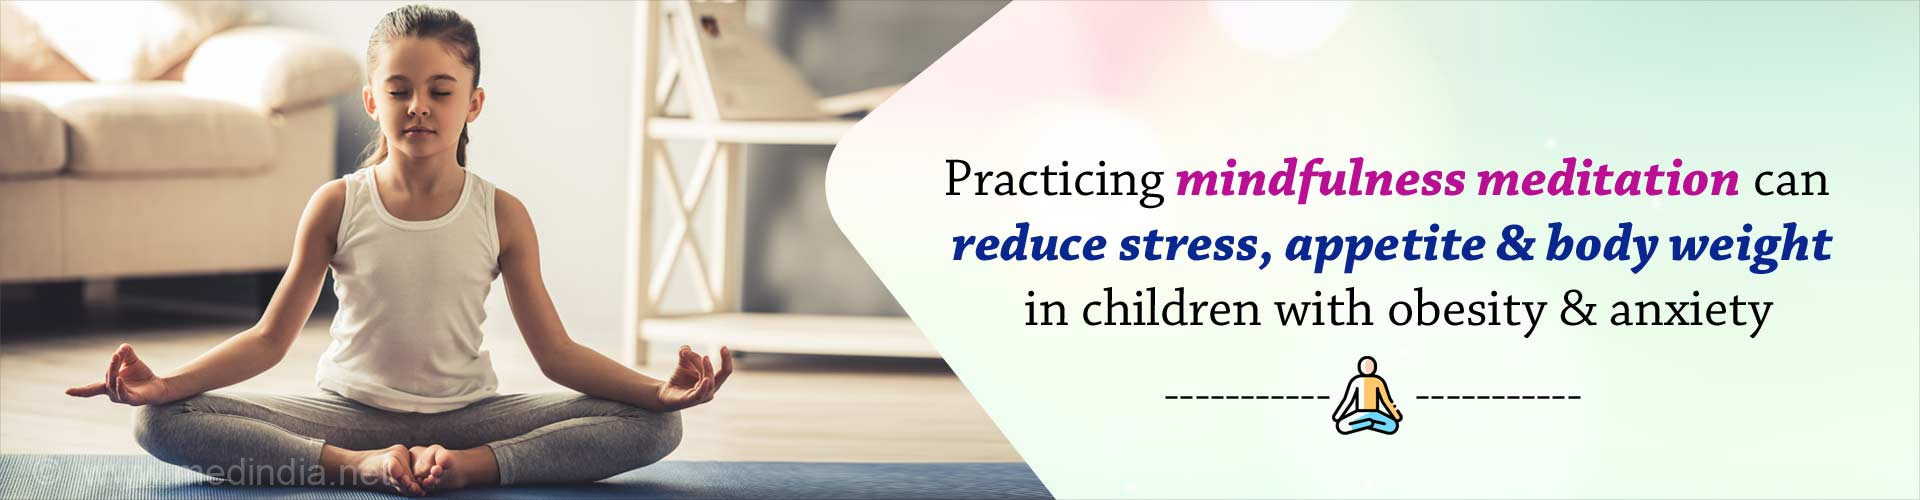 Practicing mindfulness meditation can reduce stress, appetite and body weight in children with obesity and anxiety.